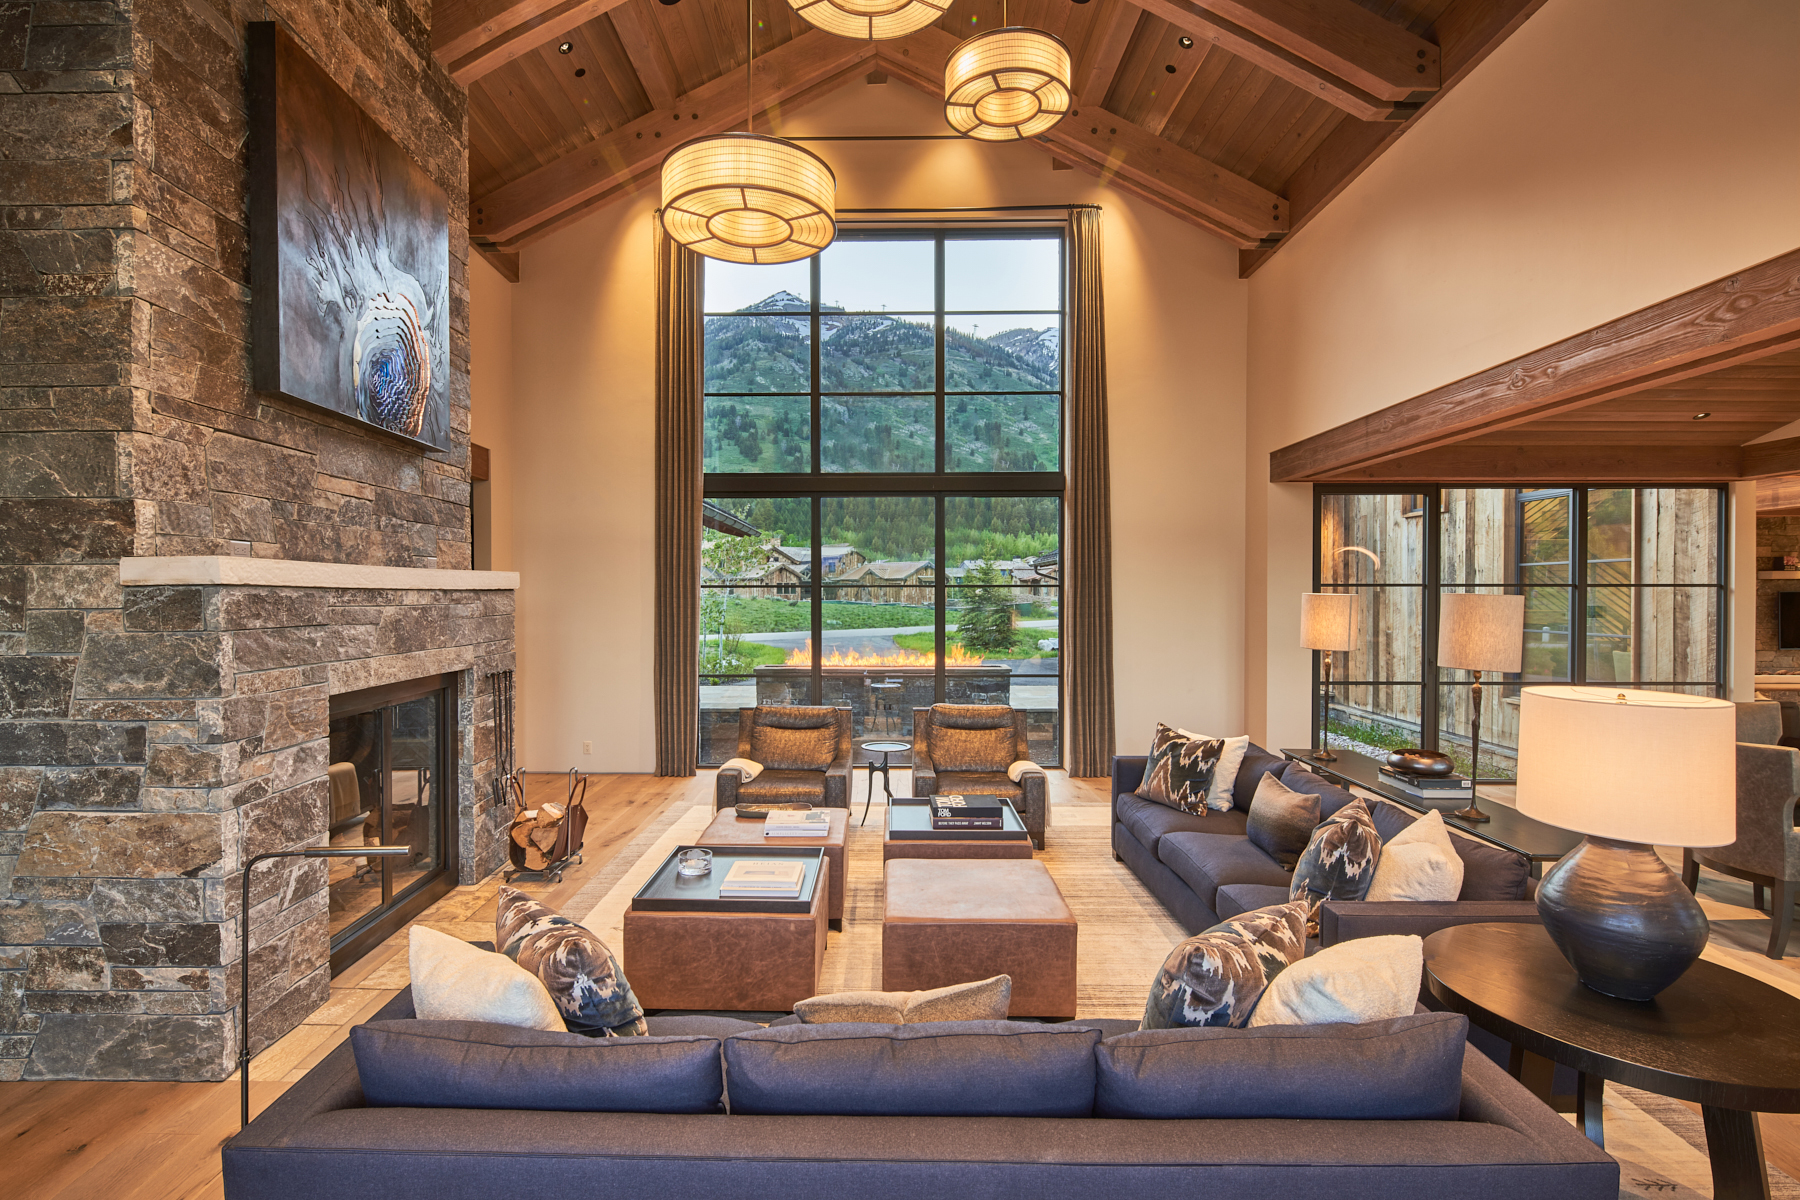 Single Family Homes للـ Sale في Shooting Star Splendor 7070 JENSEN CANYON RD, Teton Village, Wyoming 83025 United States